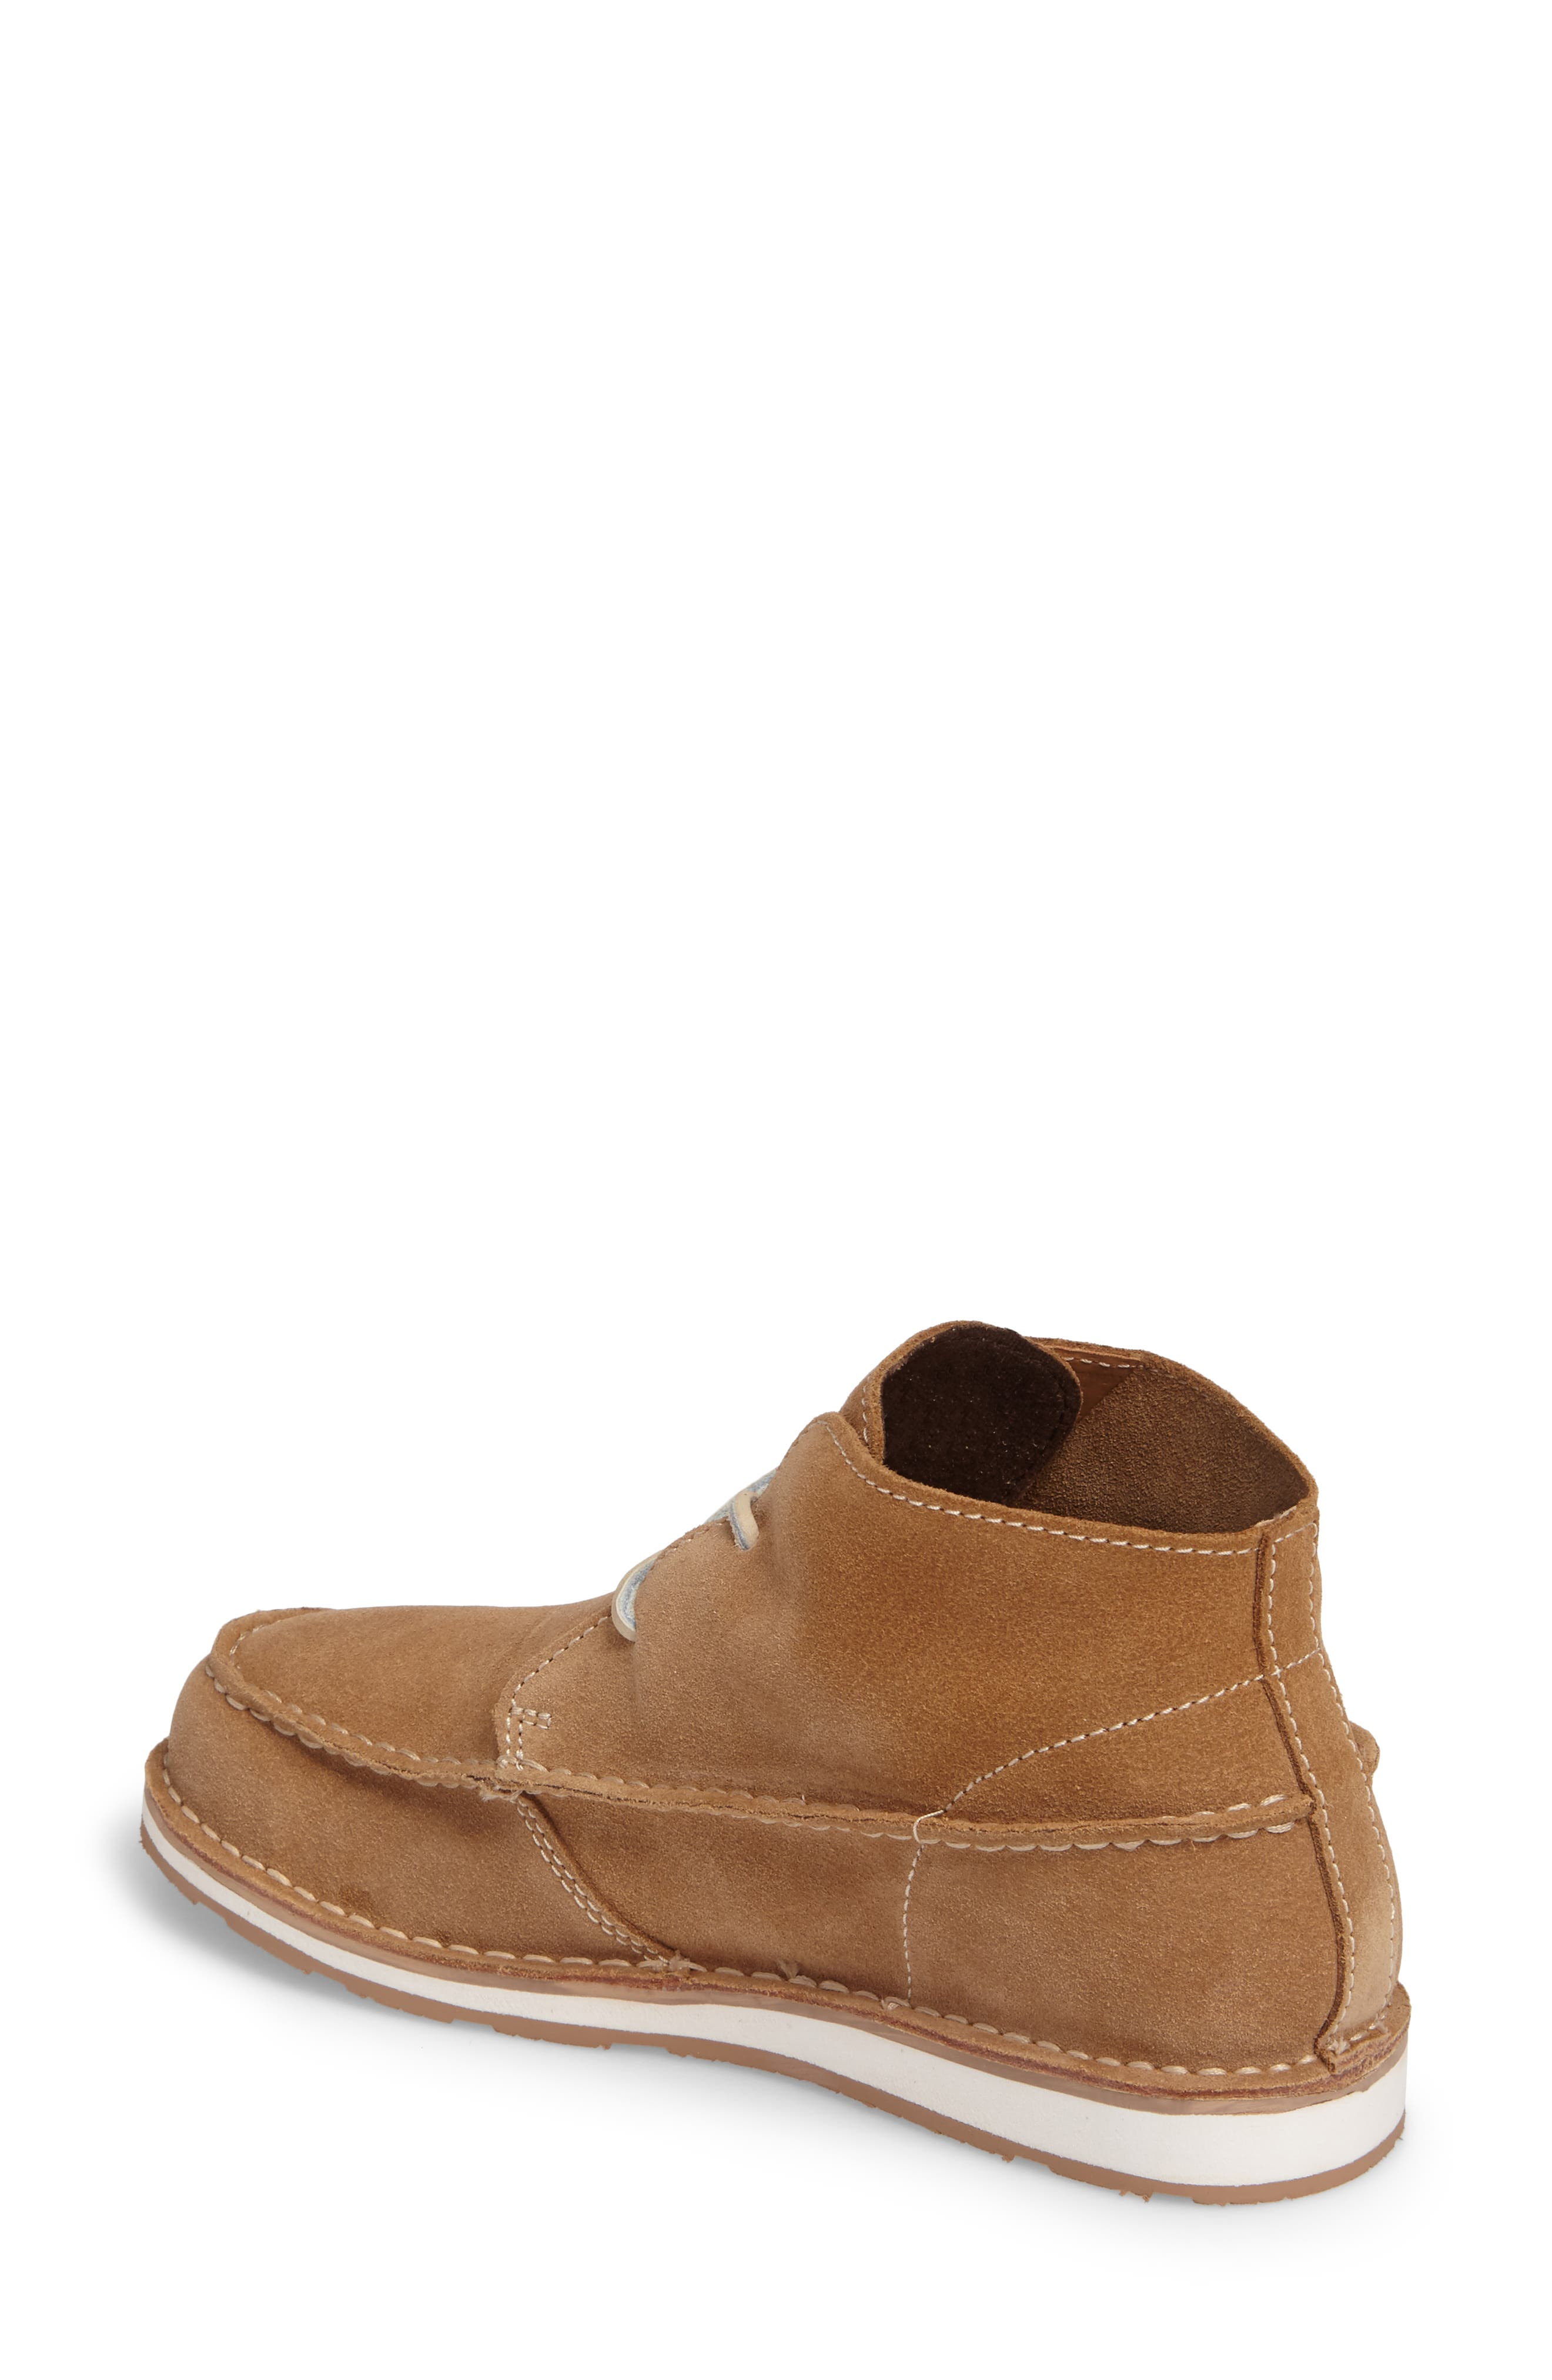 Cruiser Chukka Boot,                             Alternate thumbnail 2, color,                             Lace Dirty Taupe Suede